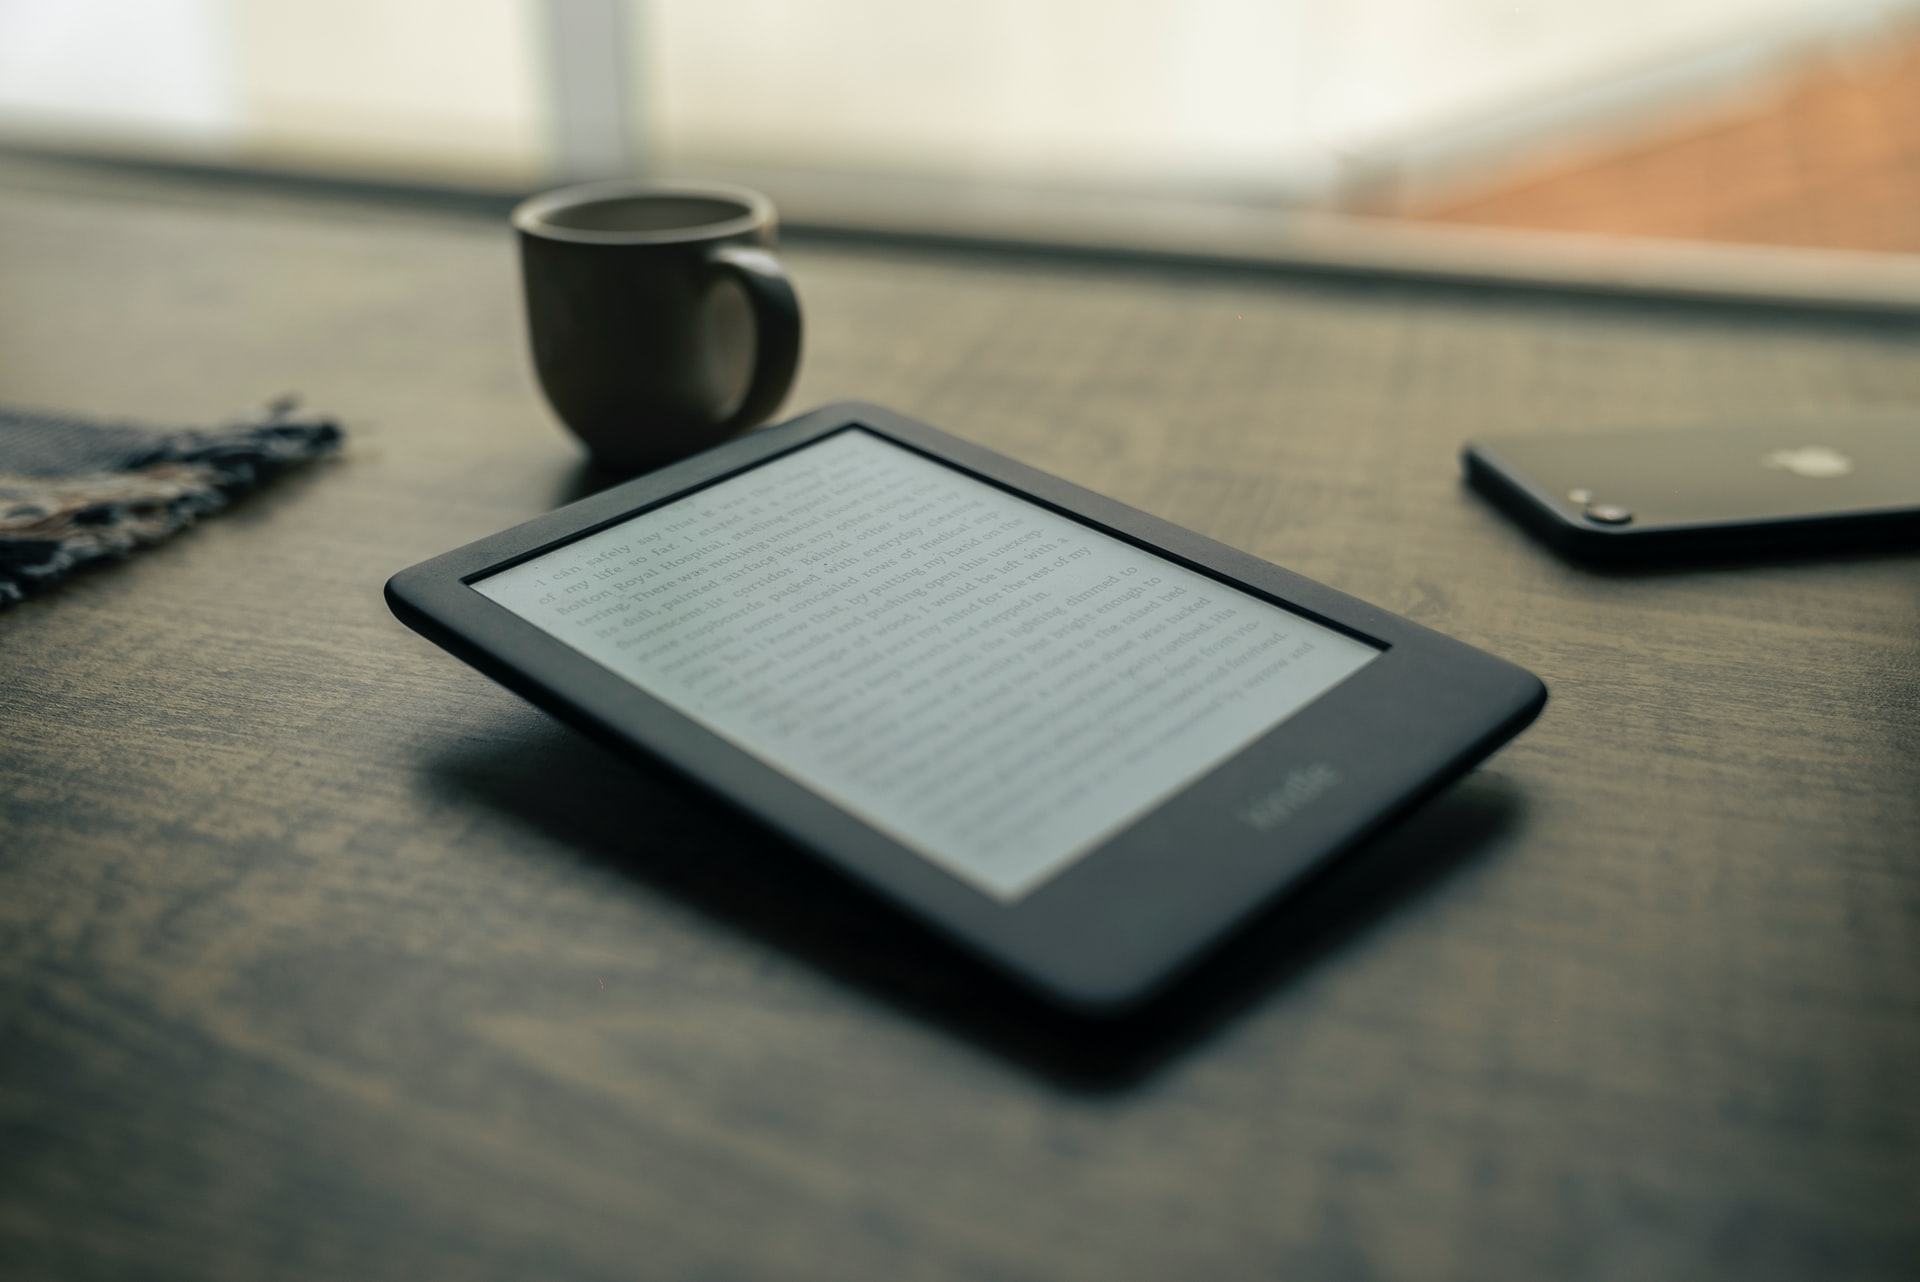 Free Kindle Books - How to Download